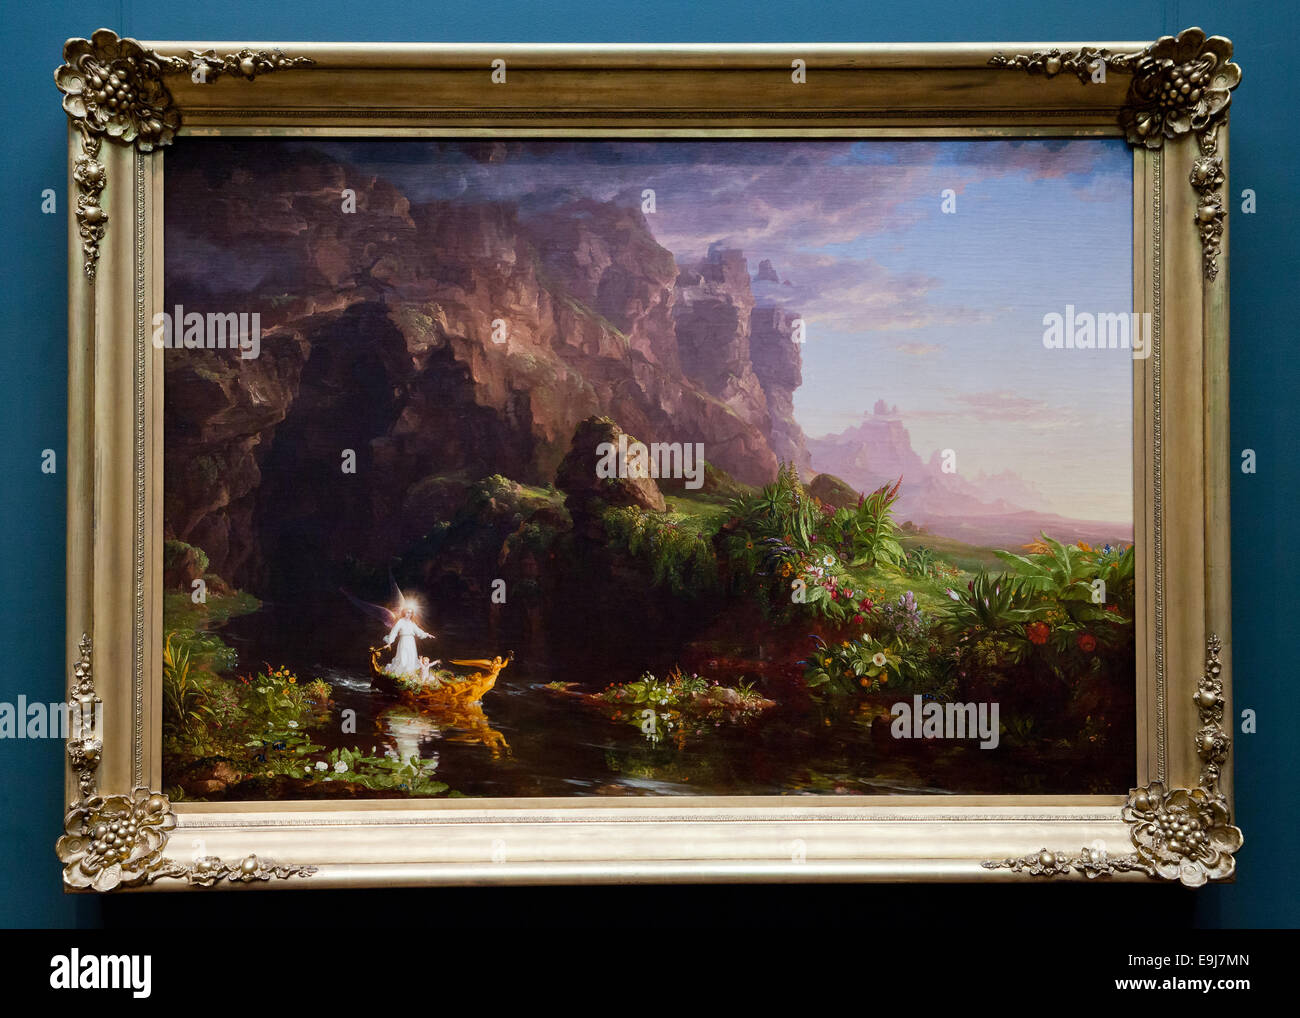 The Voyage of Life by Thomas Cole, 1842 - Stock Image